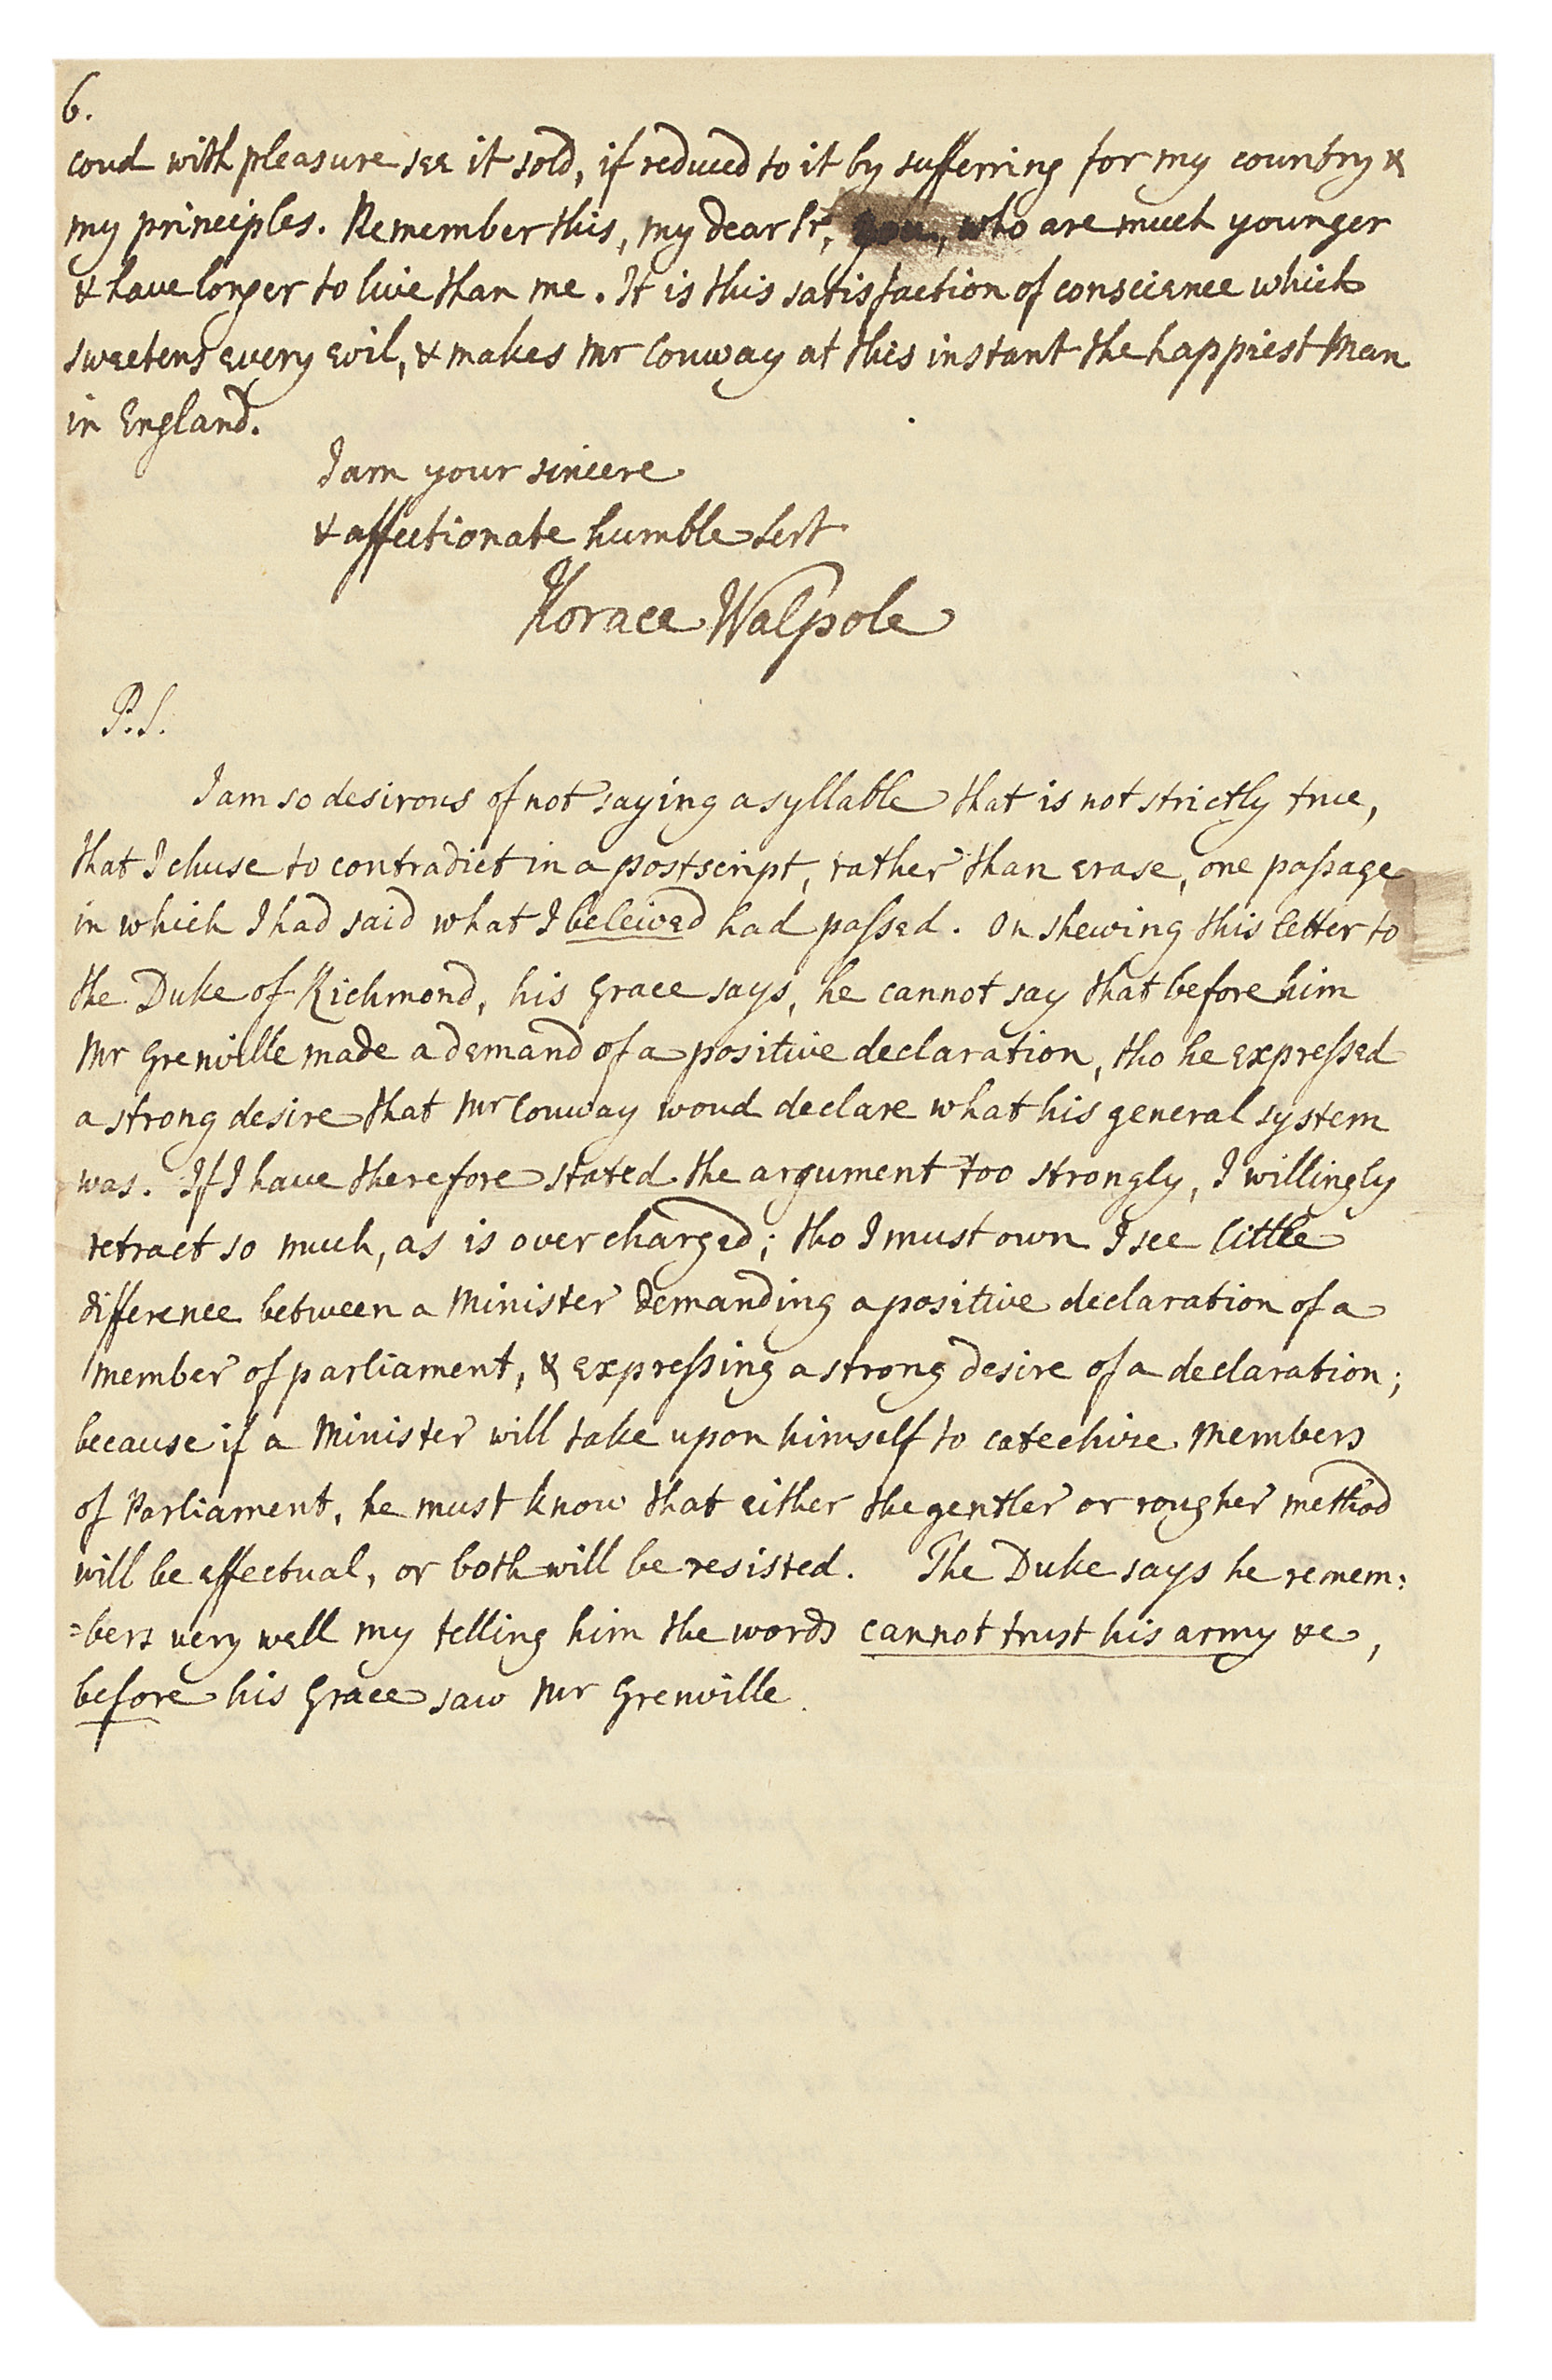 WALPOLE, Horace, 4th Earl of Orford (1717-1797). Autograph letter signed ('Horace Walpole') to [Thomas Pitt, 1st Baron Camelford], Strawberry Hill, 5 June 1764, in brown ink, including a long postscript on the last page, 6 pages, folio, integral leaf. Provenance: Thomas Pitt to George Grenville; Grenville papers deposited at Stowe; sold by 2nd Duke of Buckingham and Chandos to Edwin James (his attorney) who sold the letter to John Murray, 1851; Sotheby's sale, 11 May 1970 (lot 231).